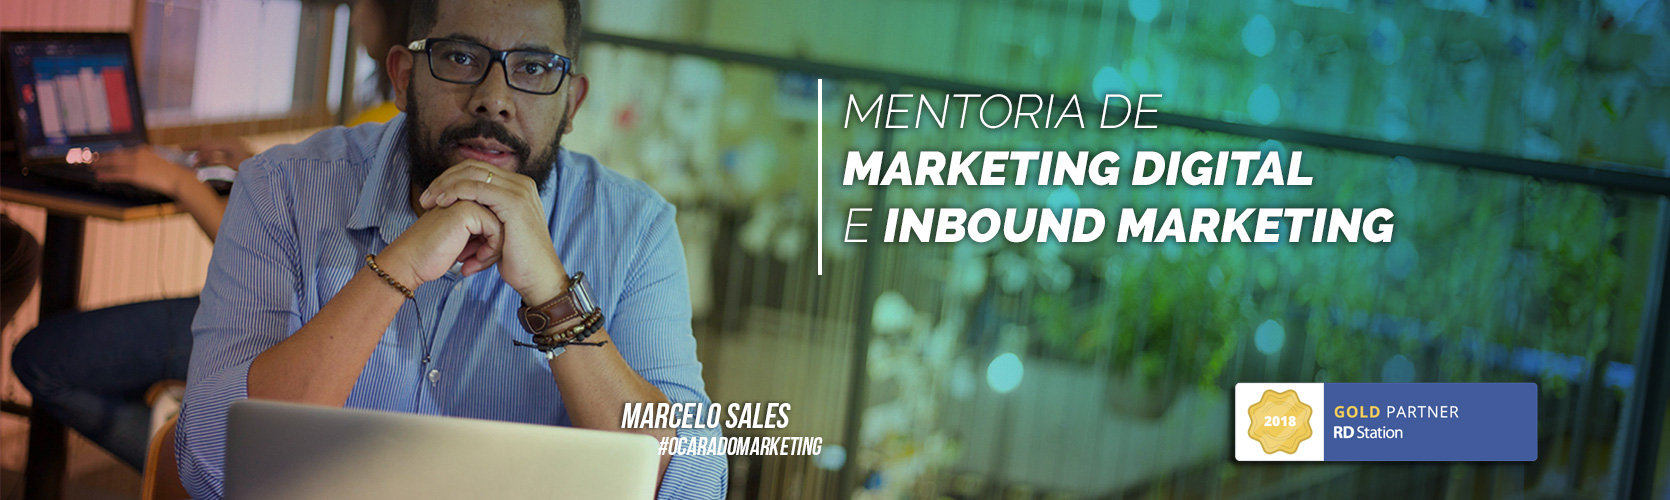 marcelo-sales-o-cara-do-marketing-1-1